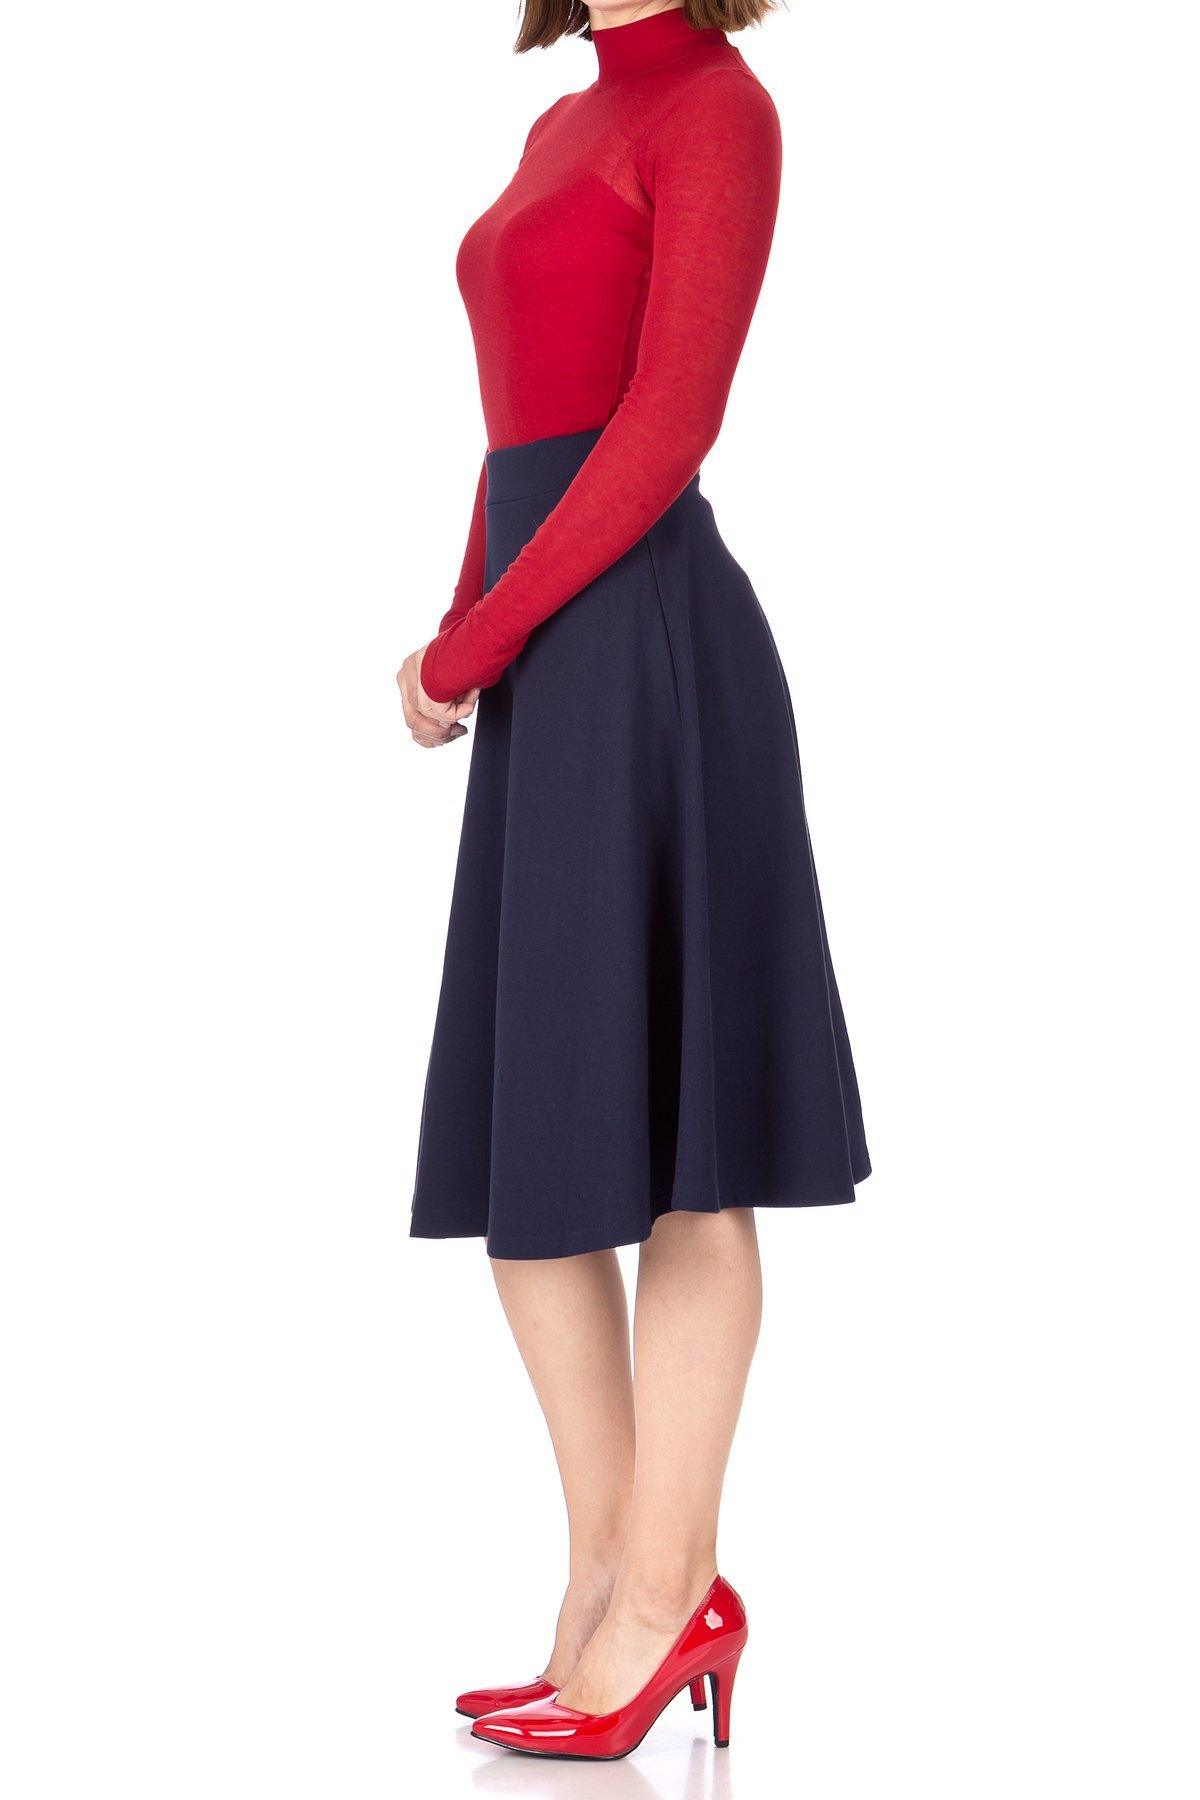 Everyday High Waist A Line Flared Skater Midi Skirt Navy 02